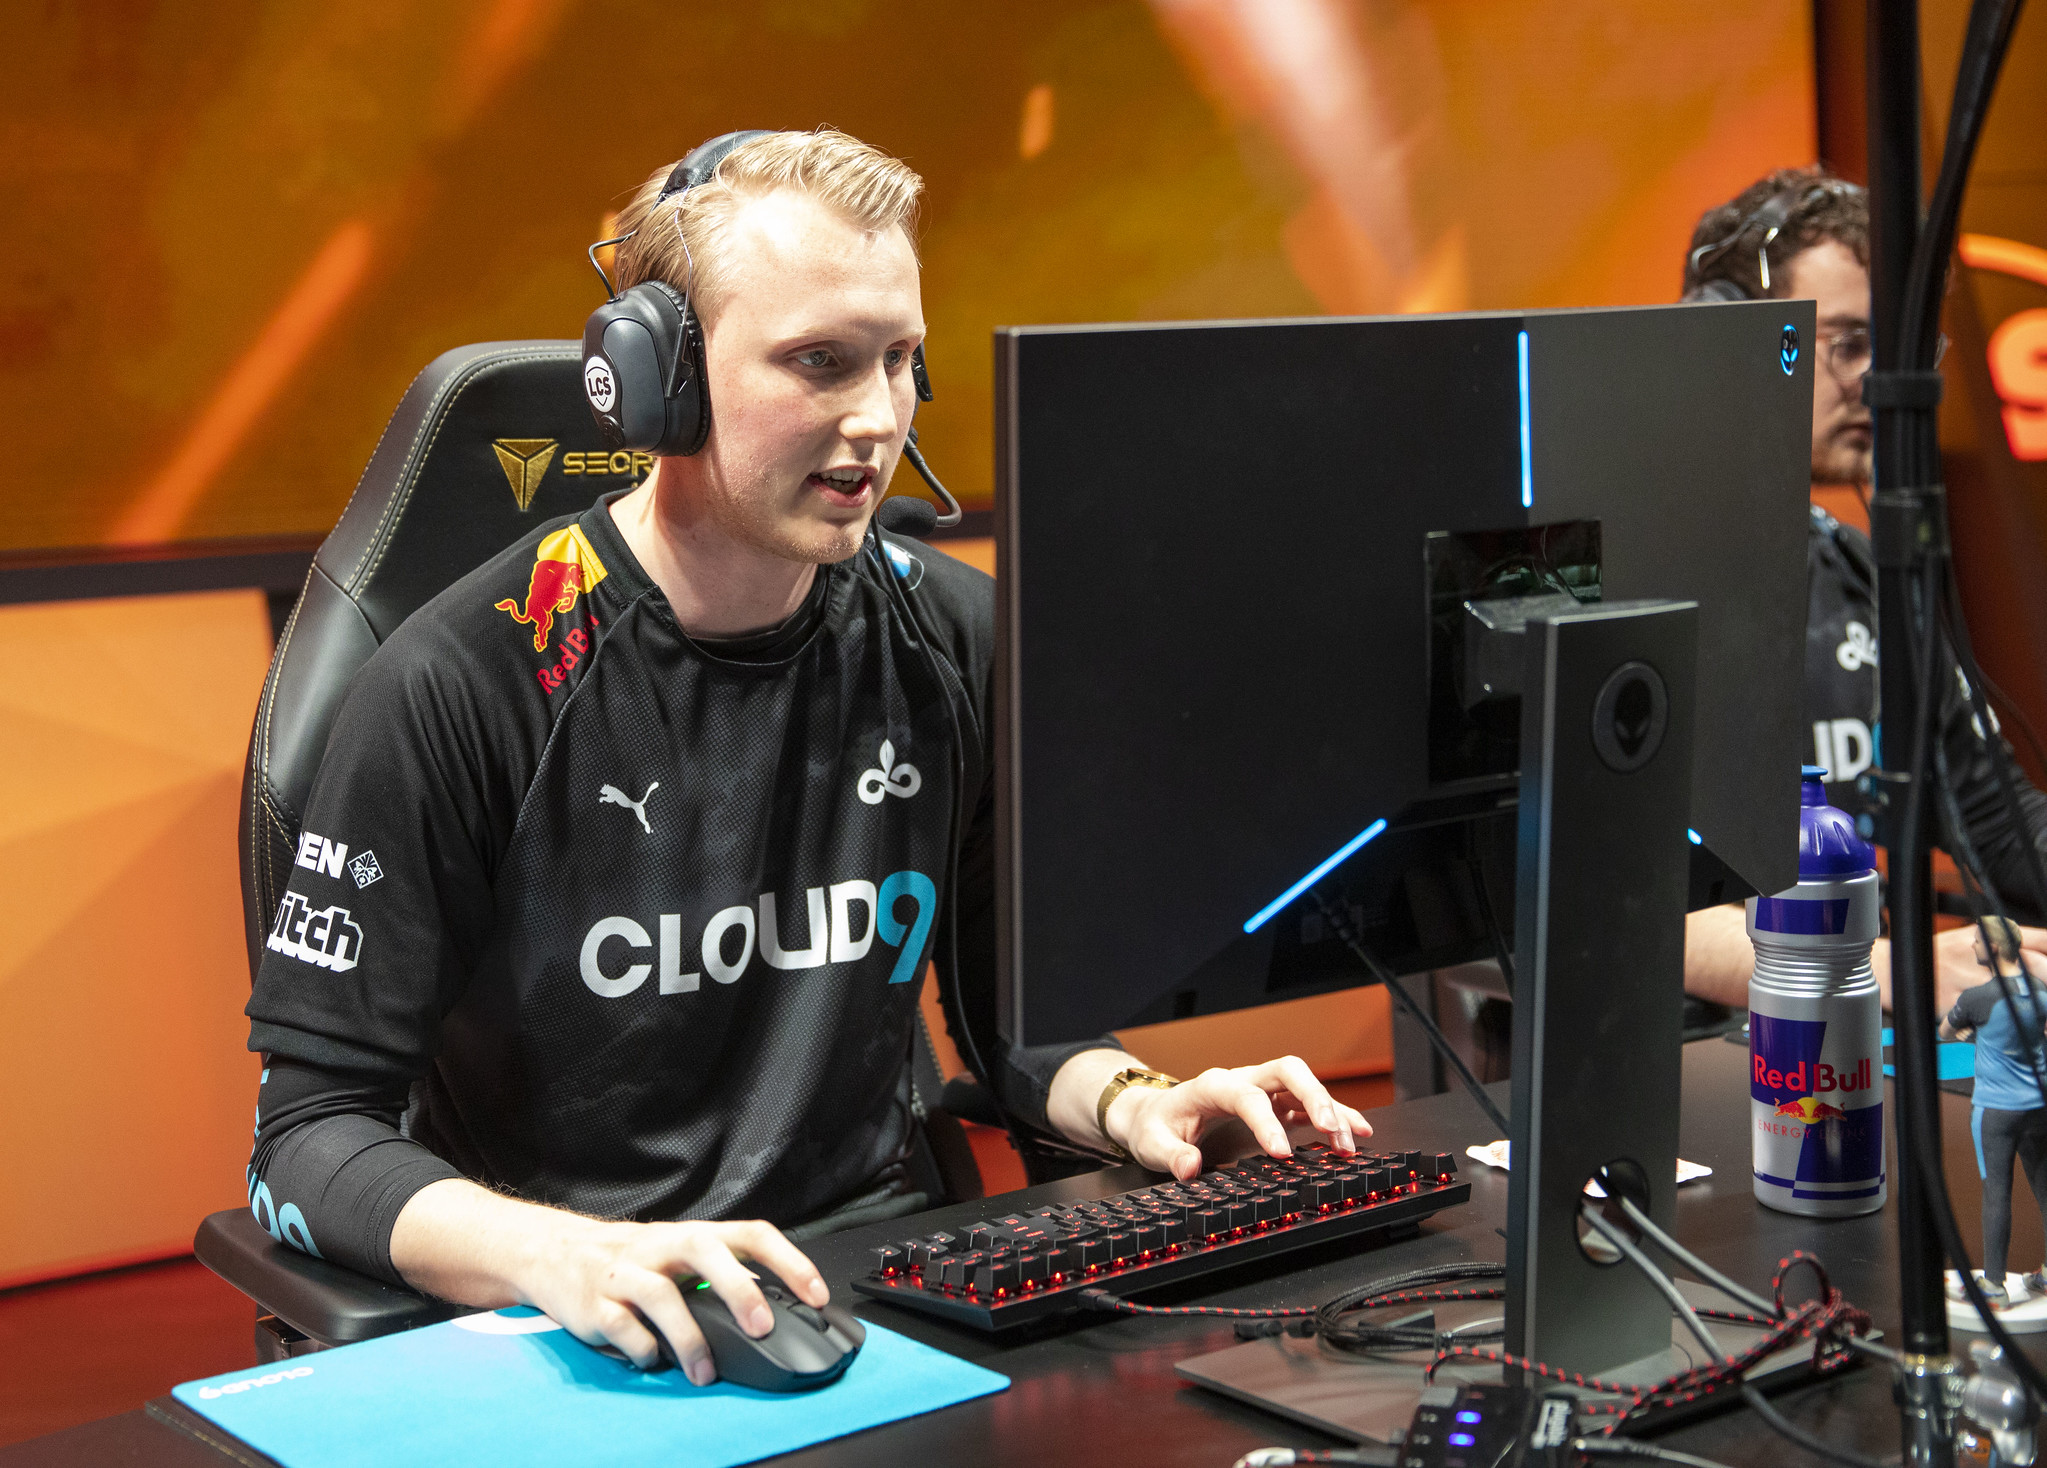 Cloud9, Dignitas, and Team Liquid have the highest KDAs in the LCS halfway through the 2021 Spring Split